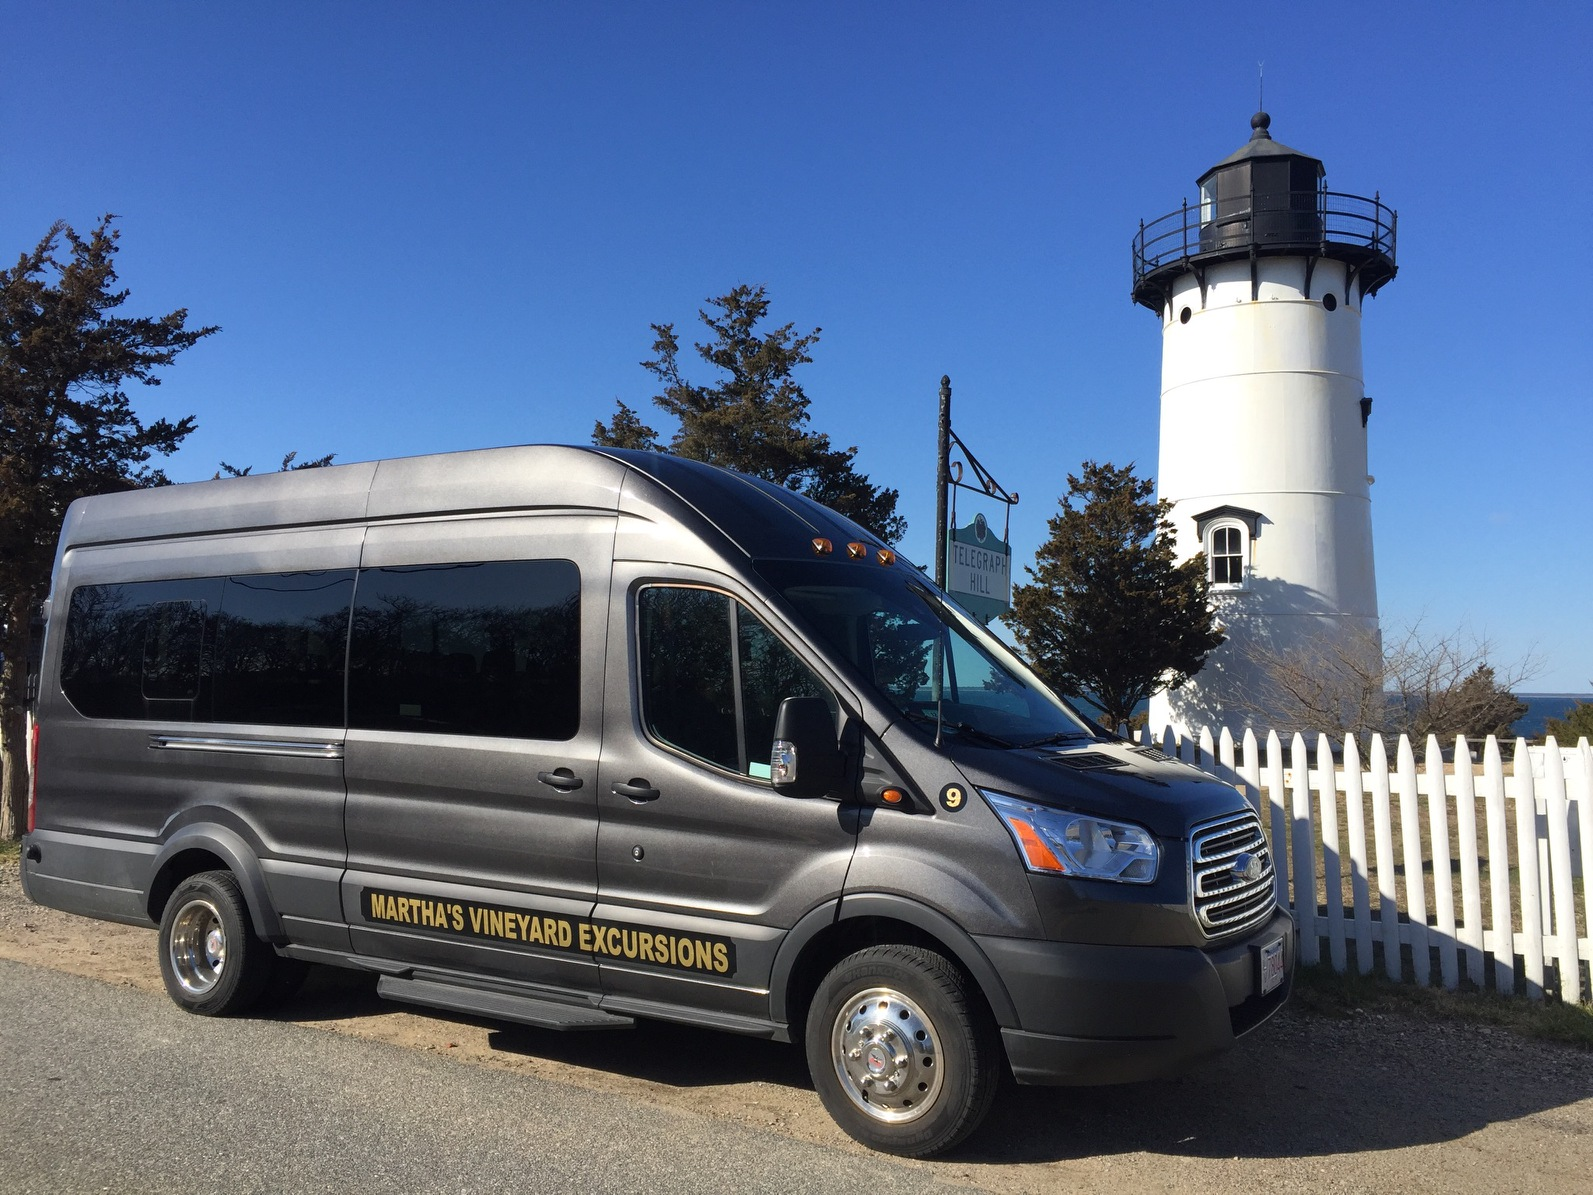 Martha's Vineyard Excursions LLC